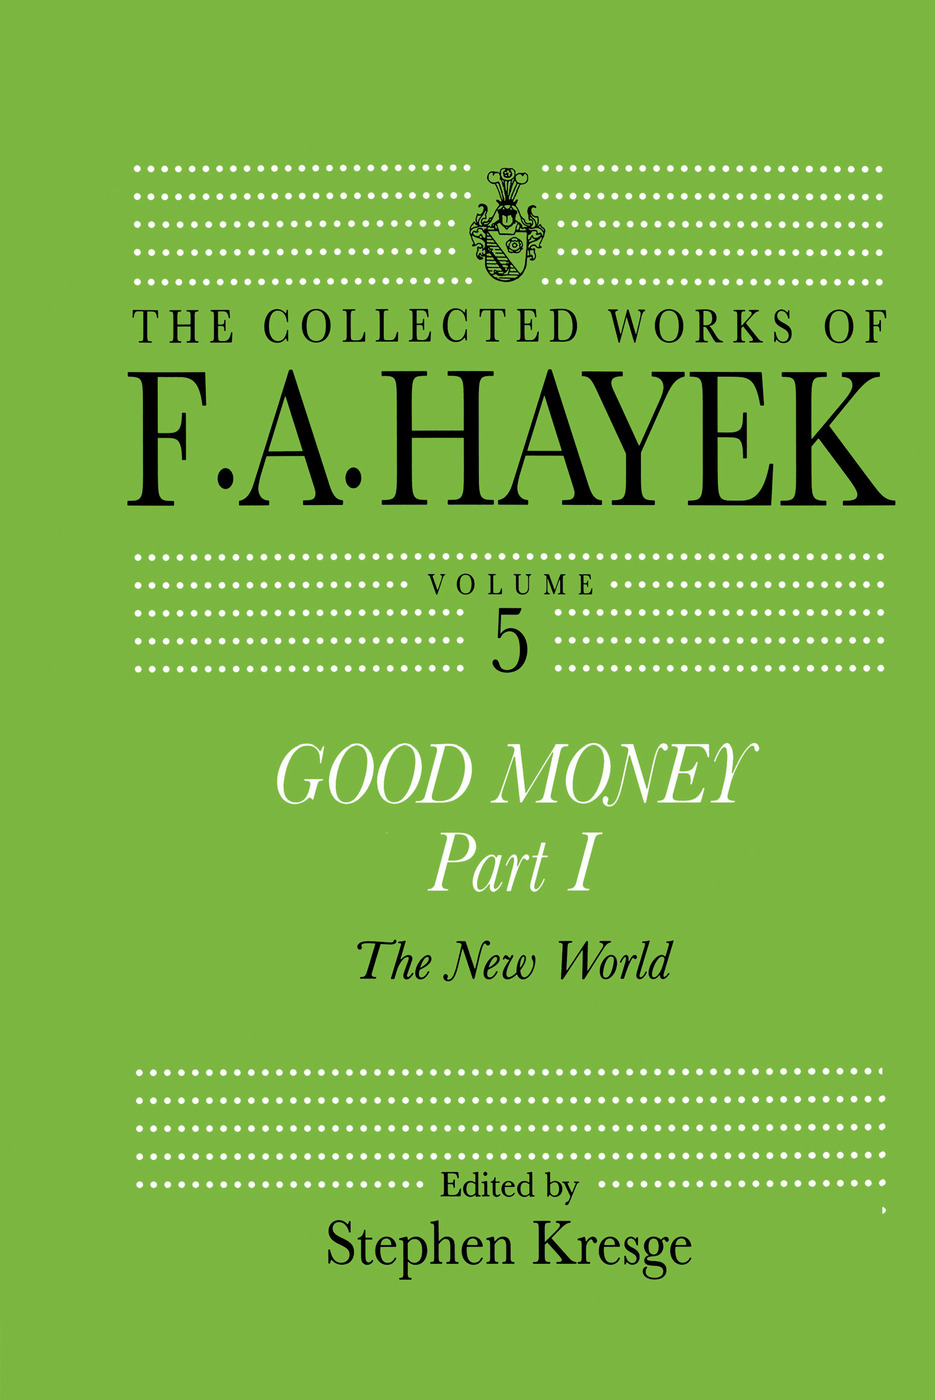 Good Money, Part I: Volume Five of the Collected Works of F.A. Hayek book cover